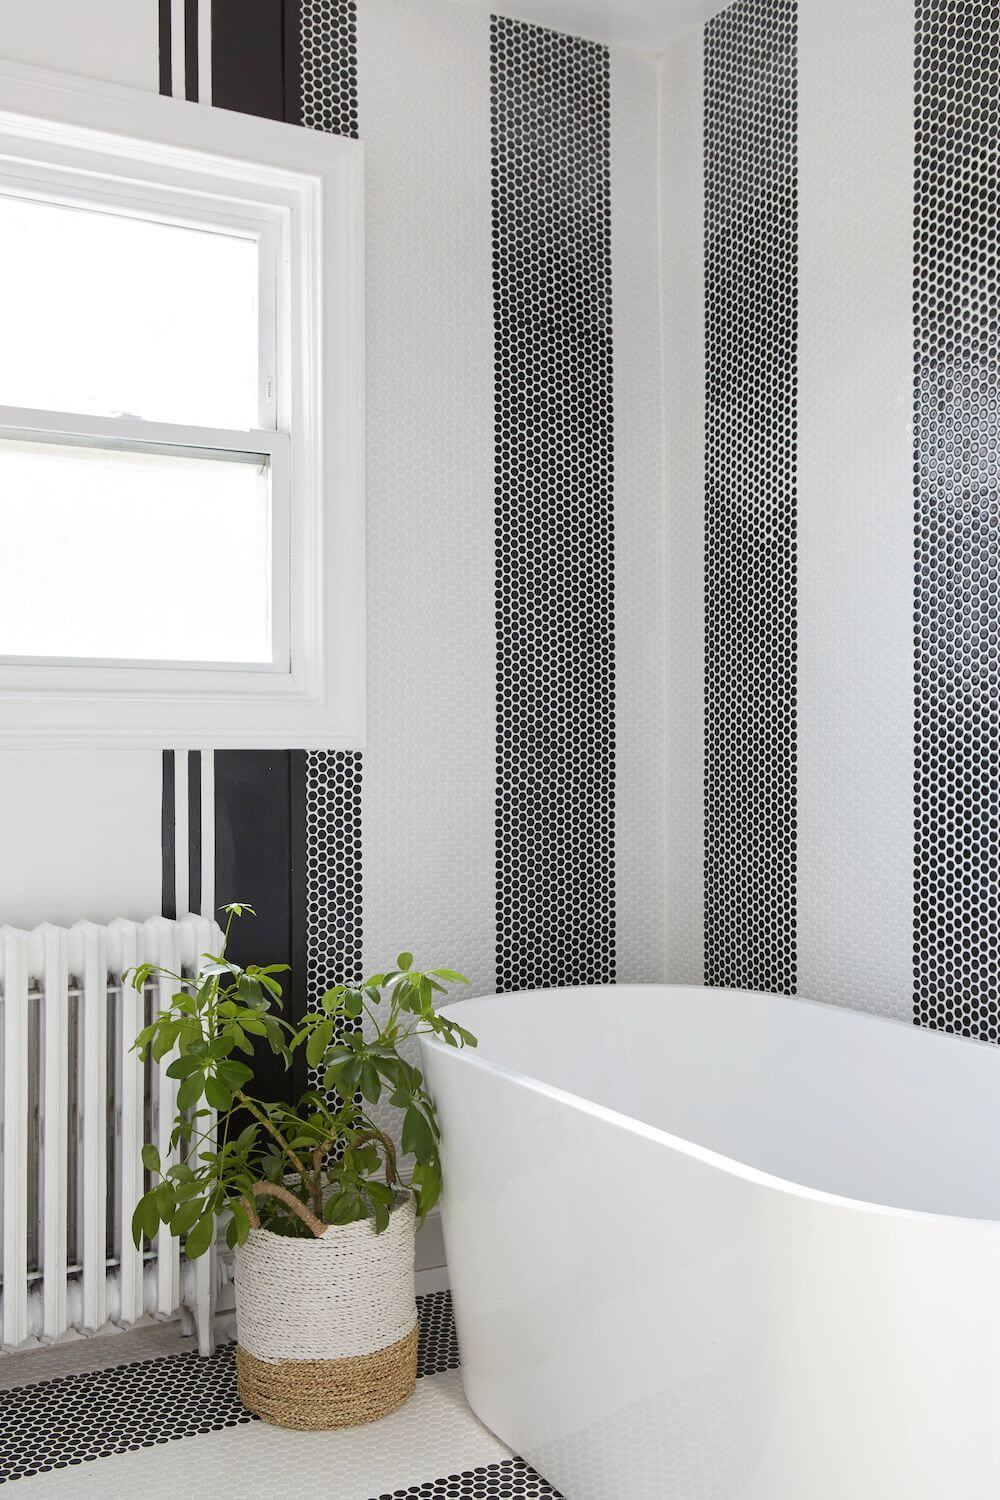 11 Small Bathroom Tile Ideas That'll Liven Up Your ... on Small Space Small Bathroom Tiles Design  id=45584